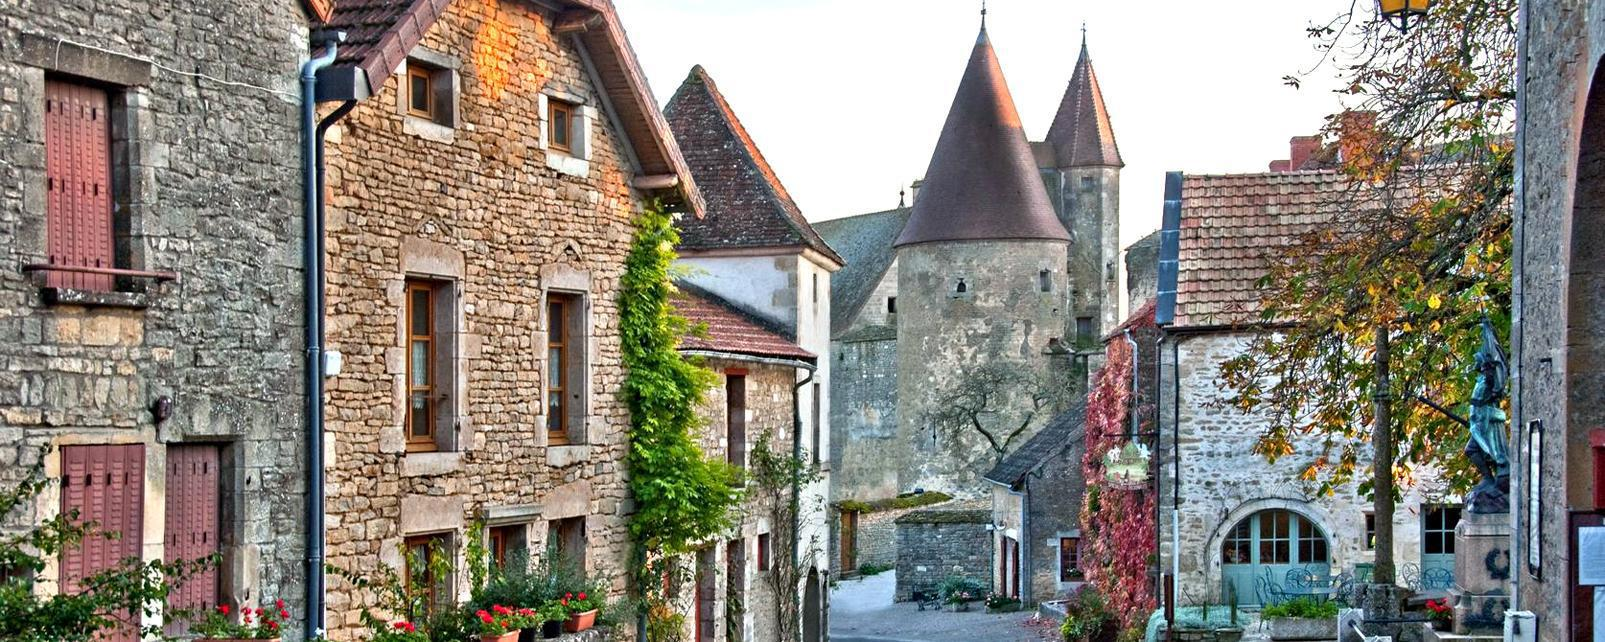 Europe; France; Alsace; Guebwiller;